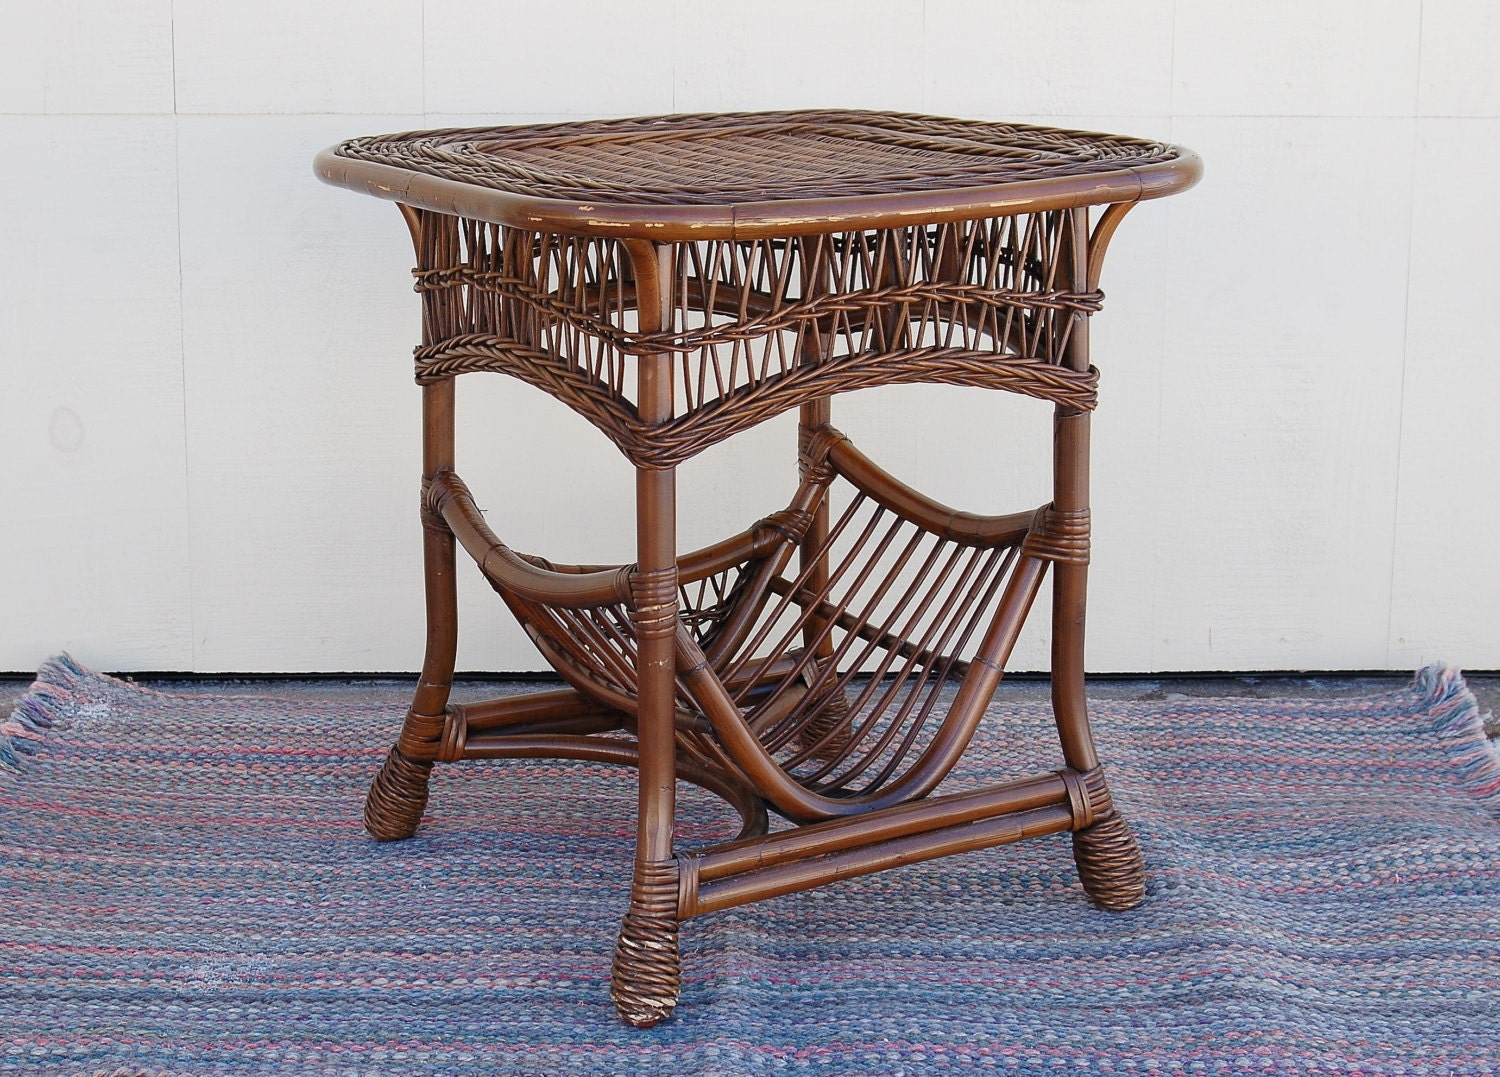 Rattan reed wicker table built in magazine rack cane bamboo for Wicker reed